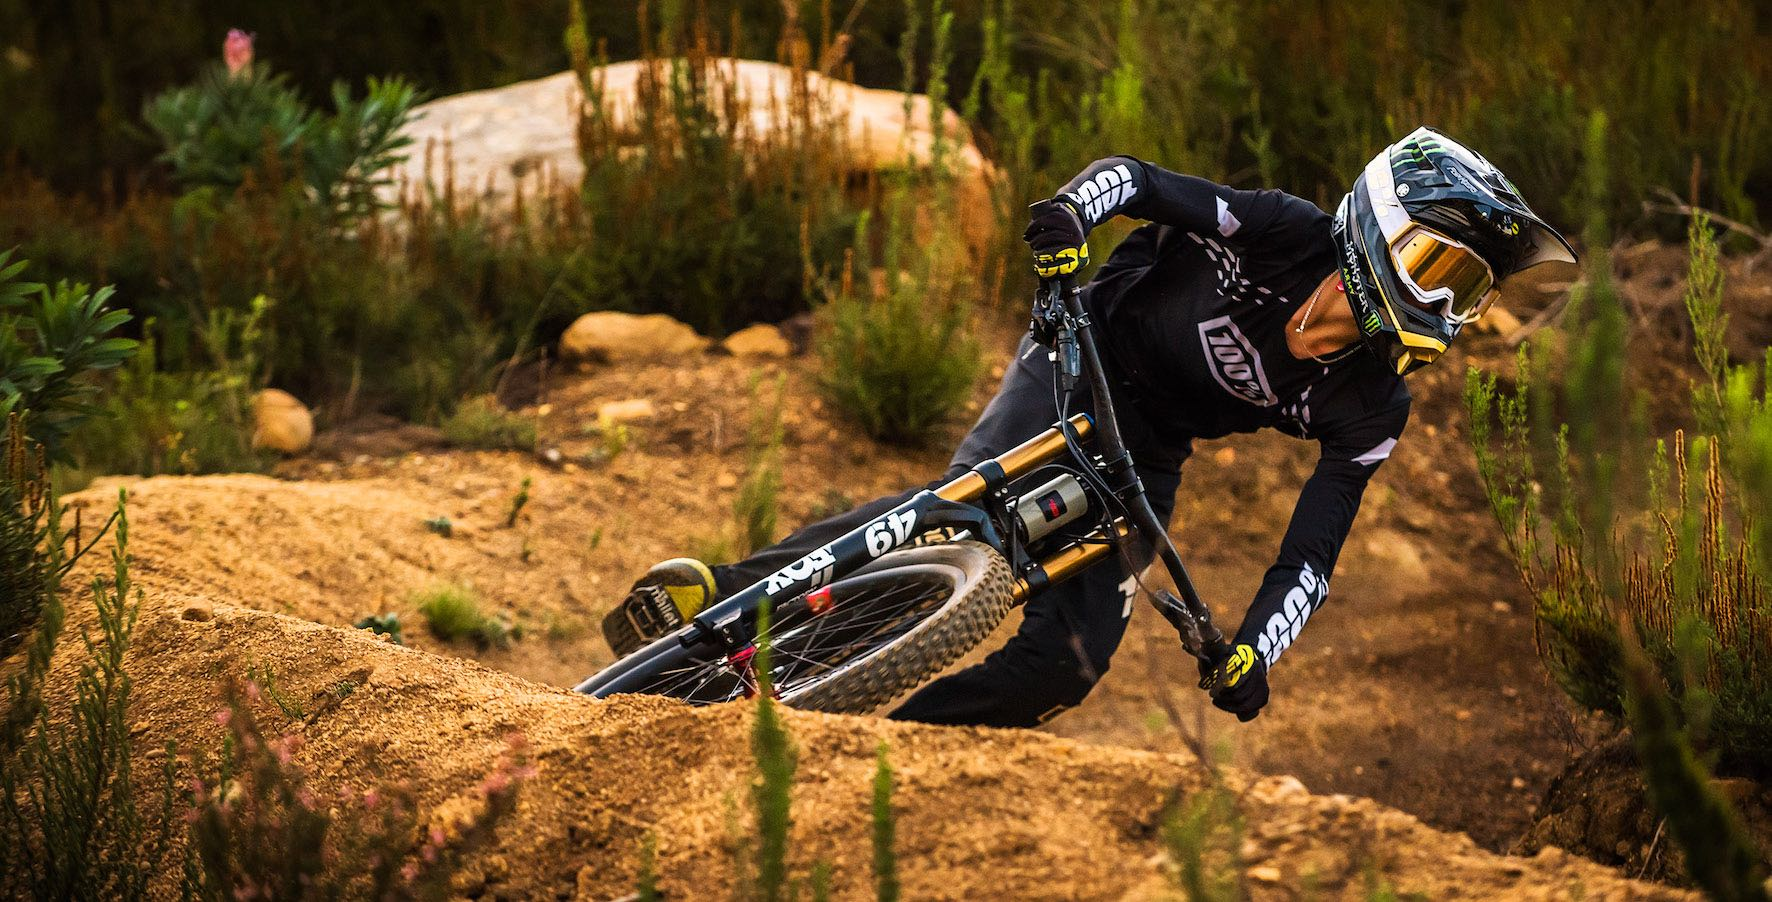 Downhill Mountain Biker, Ike Klaassen joins the Monster Army Family